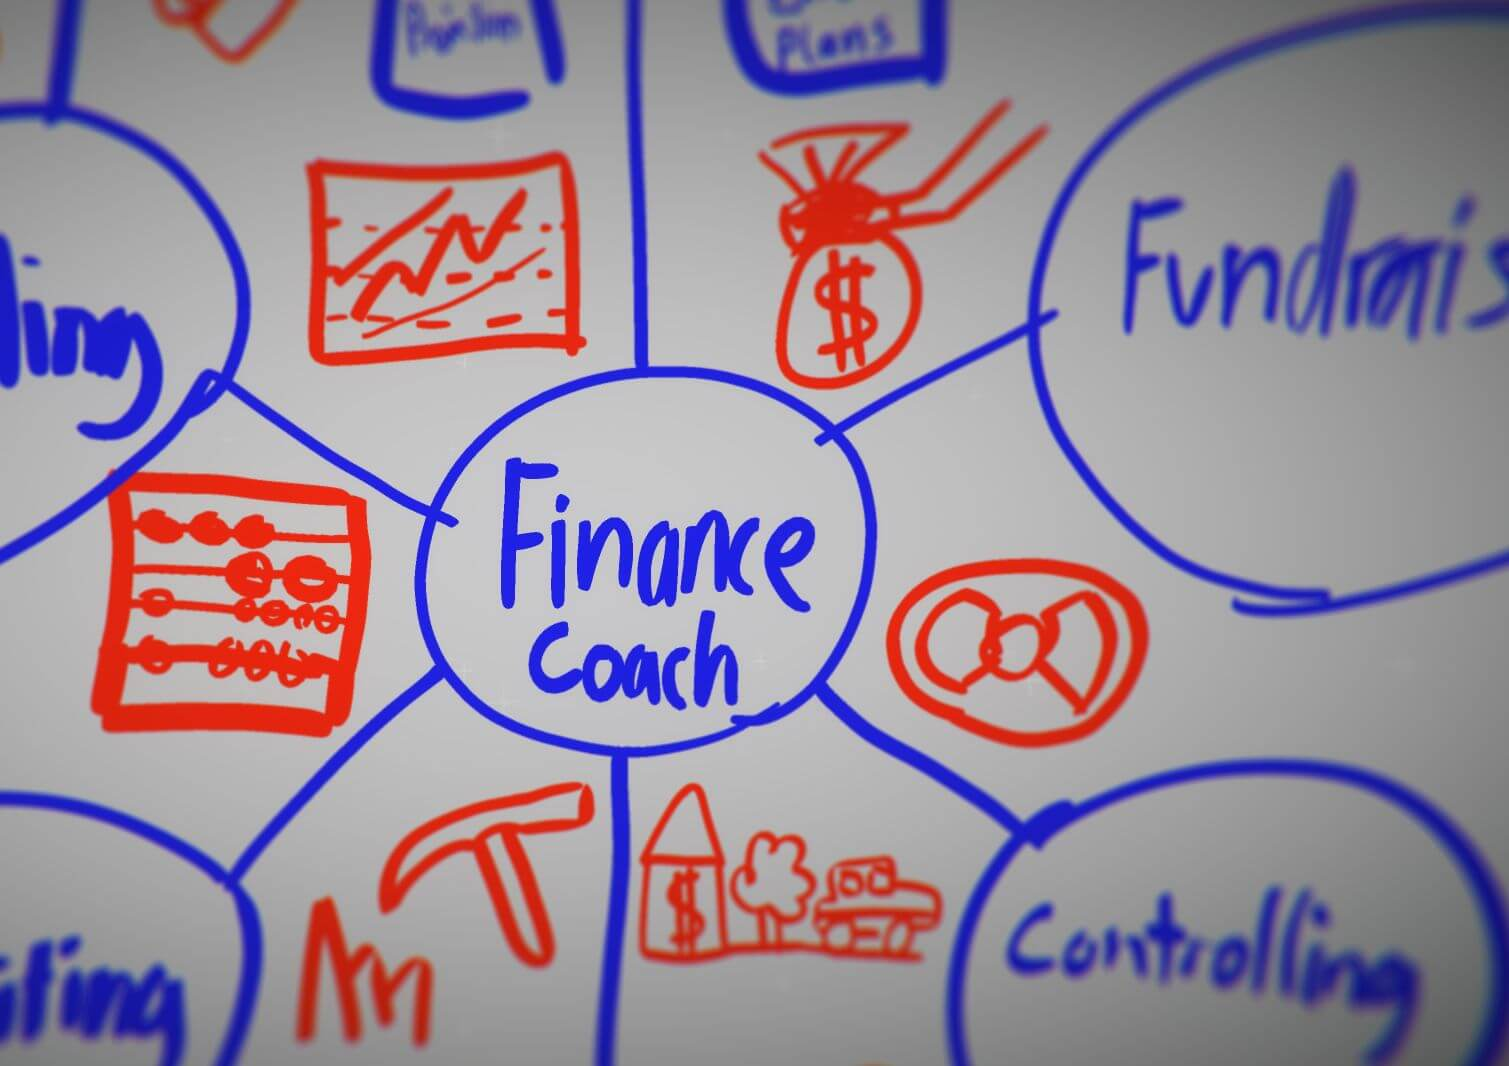 Finance Coach-Startup Coach-Business Coach-BrainHive-43